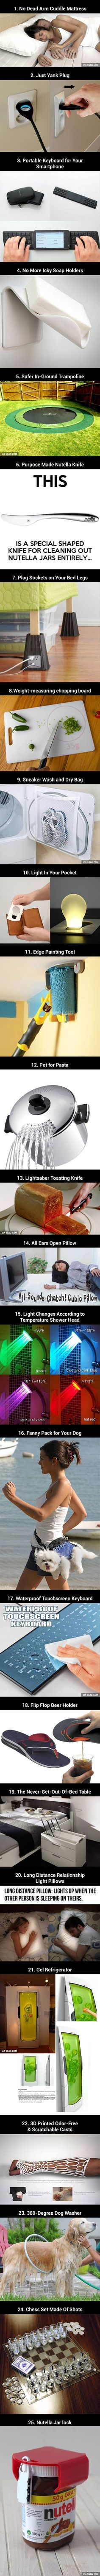 25 Just Really Cool Inventions - 9GAG